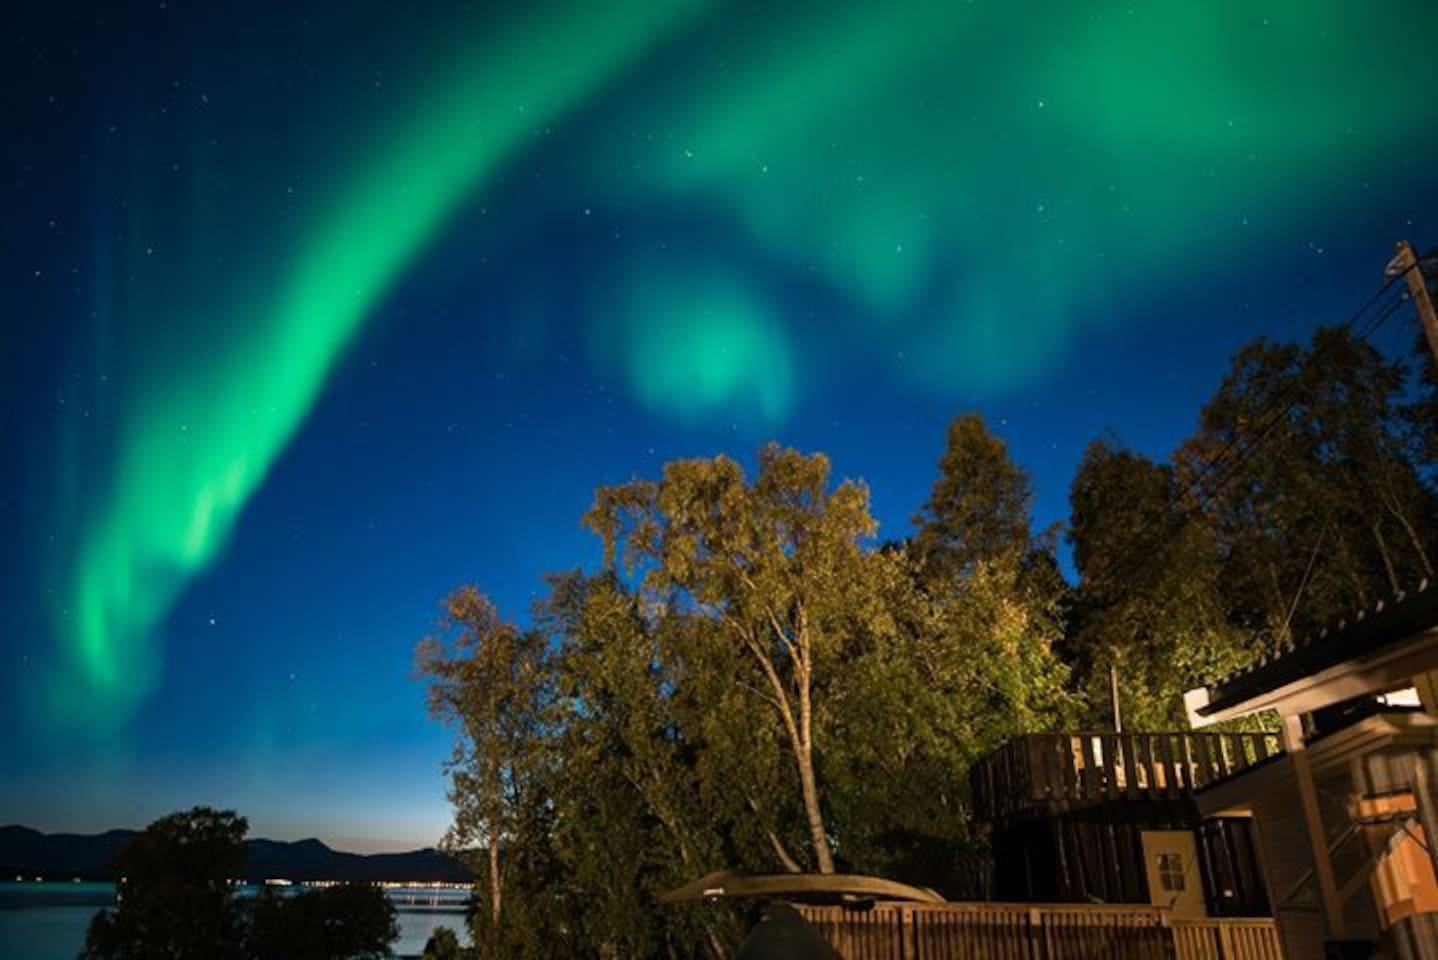 Northern Lights are visible in Northern Norway between beginning of September and end of March, when the sky is clear and there is enough geomagnetic activity. To maximise your chances to see it, we recommend staying at least 5 days and having a car